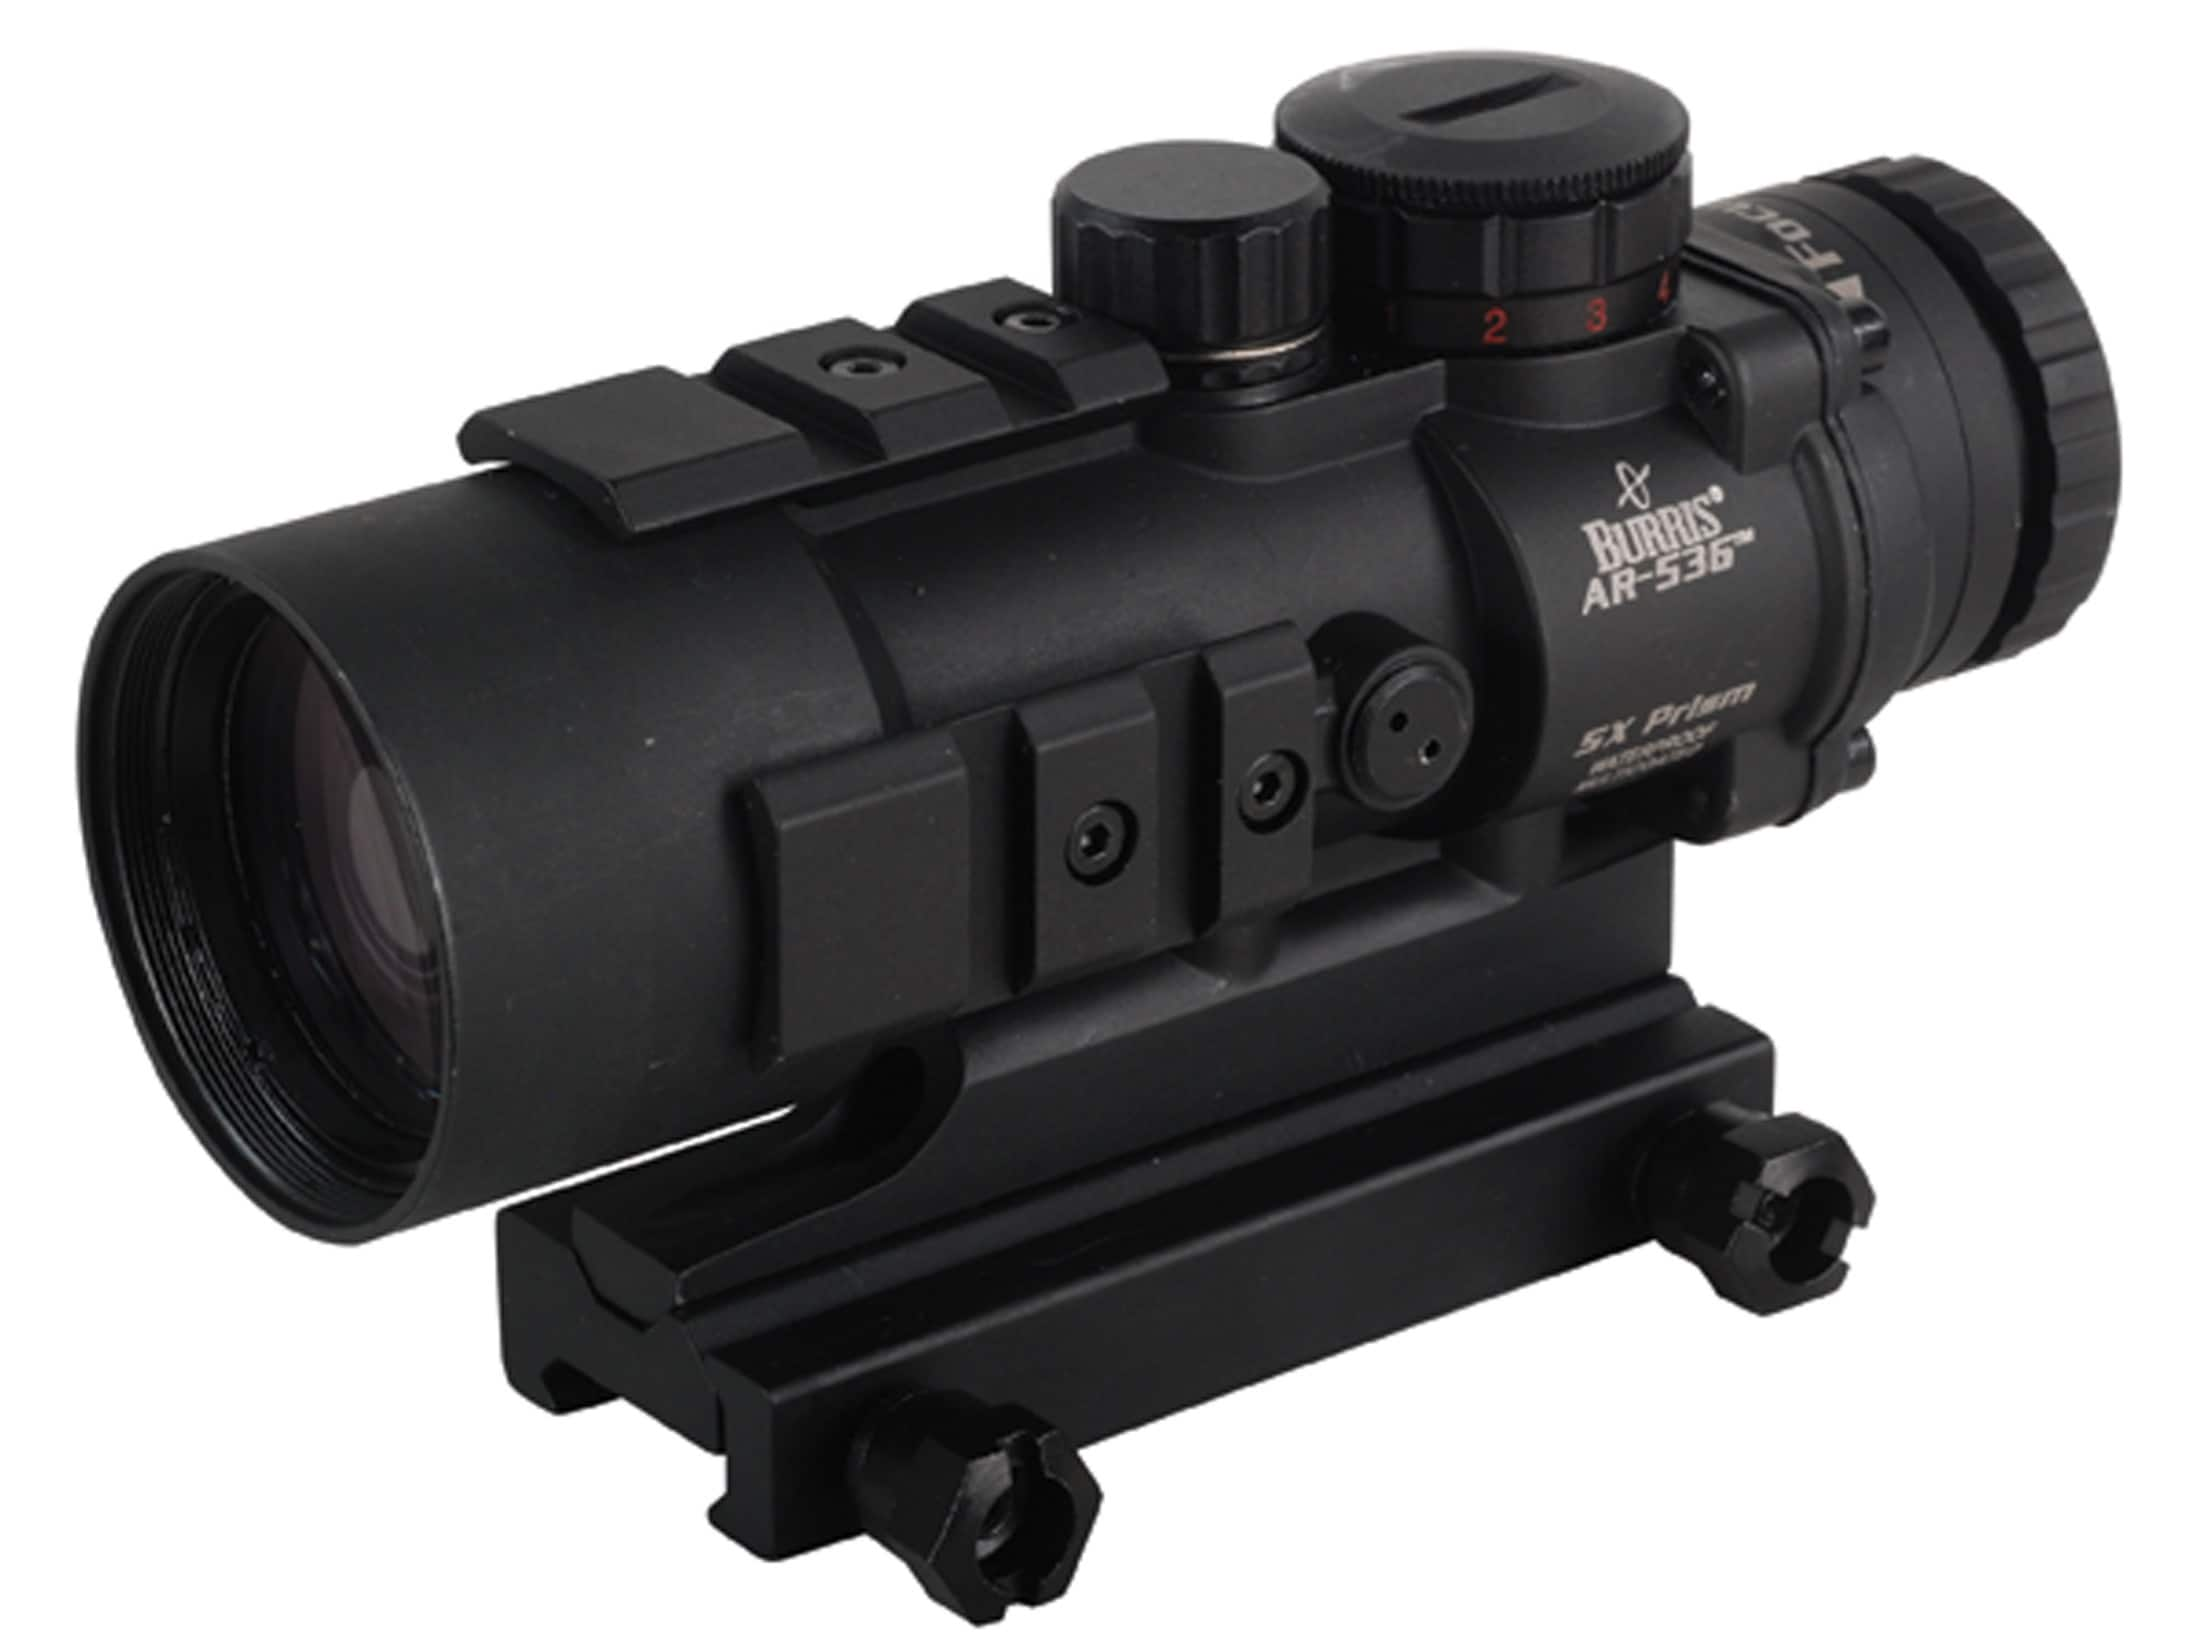 Burris AR-536 5x 36mm Prism Sight Ballistic CQ Reticle Matte with Lens Covers!! $199.99